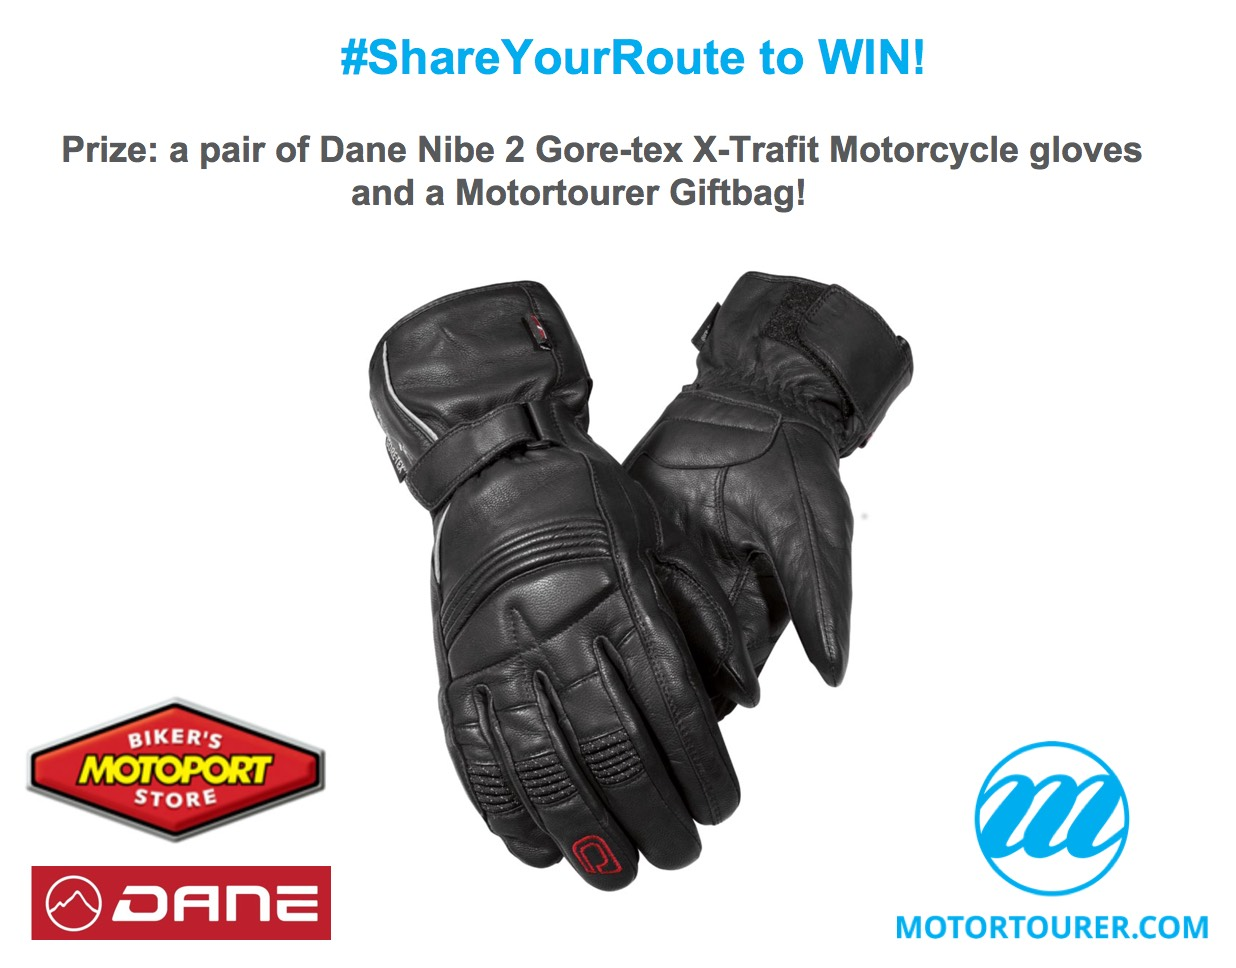 #ShareYourRoute competition sweepstake win Dane Nibe 2 Gore-tex X-Trafit Motorcycle gloves